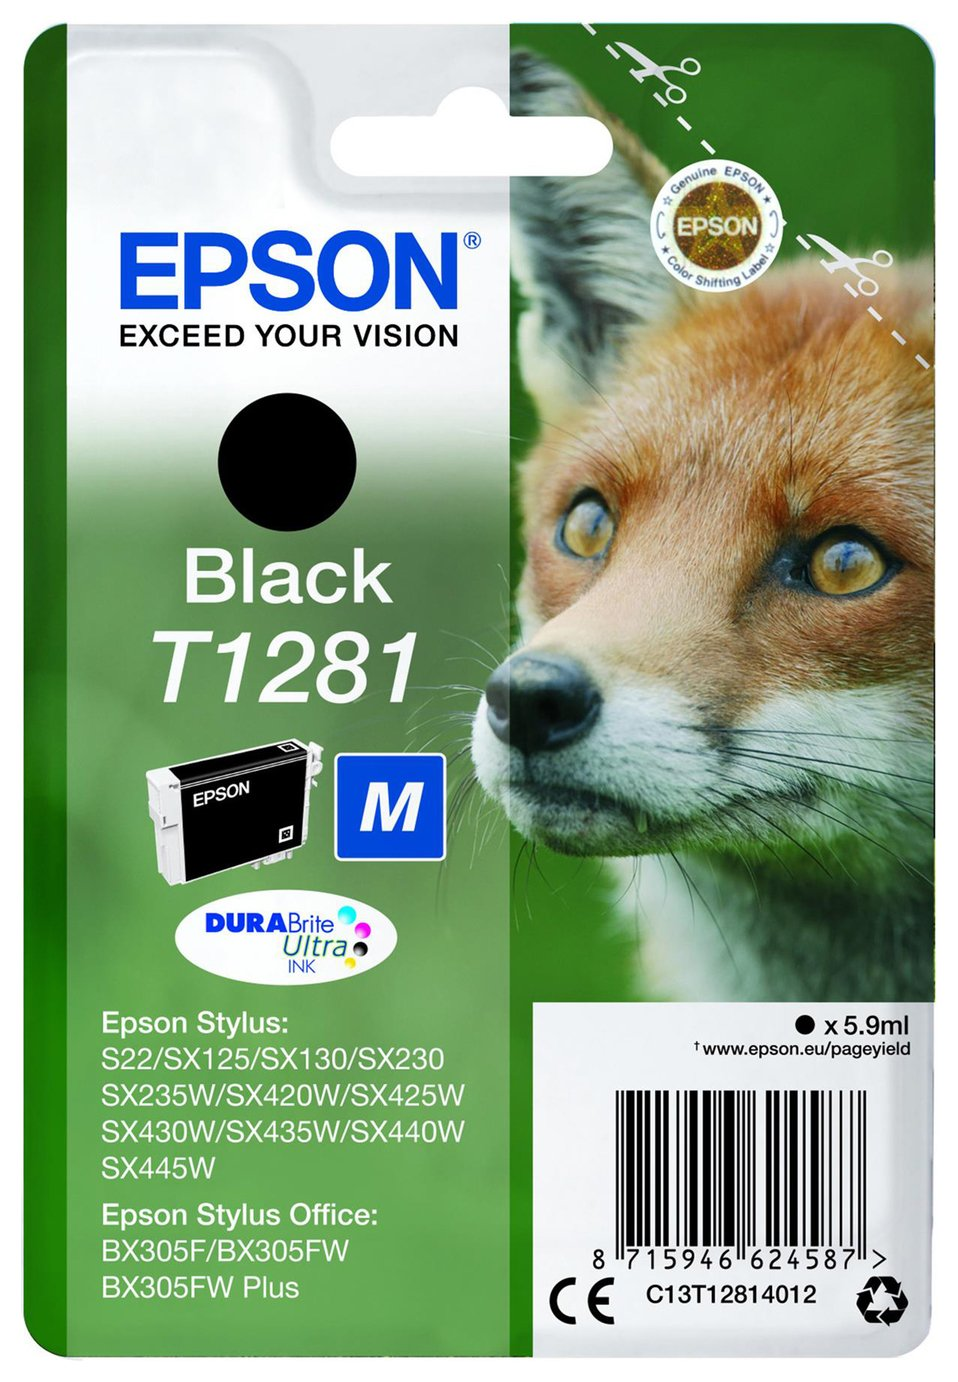 Epson Fox T1281 Black Ink Cartridge from Epson